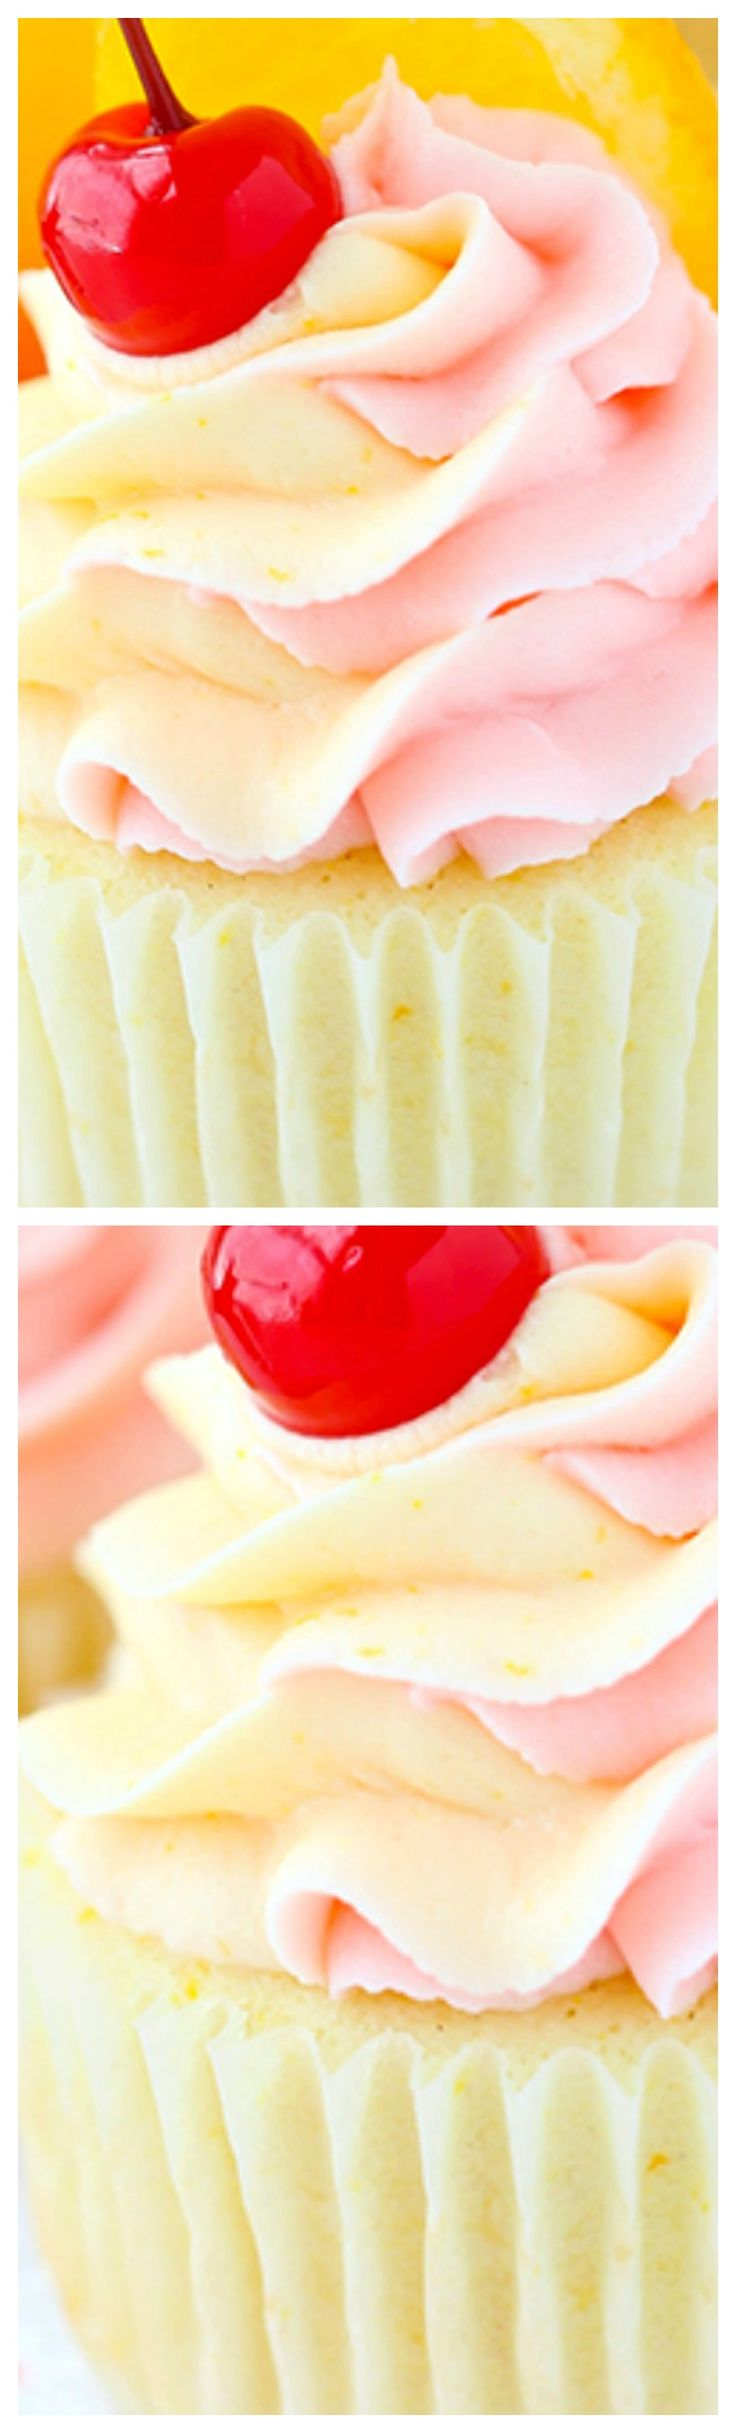 Tequila Sunrise Cupcakes ~ Fun, fruity and spiked to resemble a favorite cocktail... With flavors of orange, grenadine and tequila, it's a delicious combination!